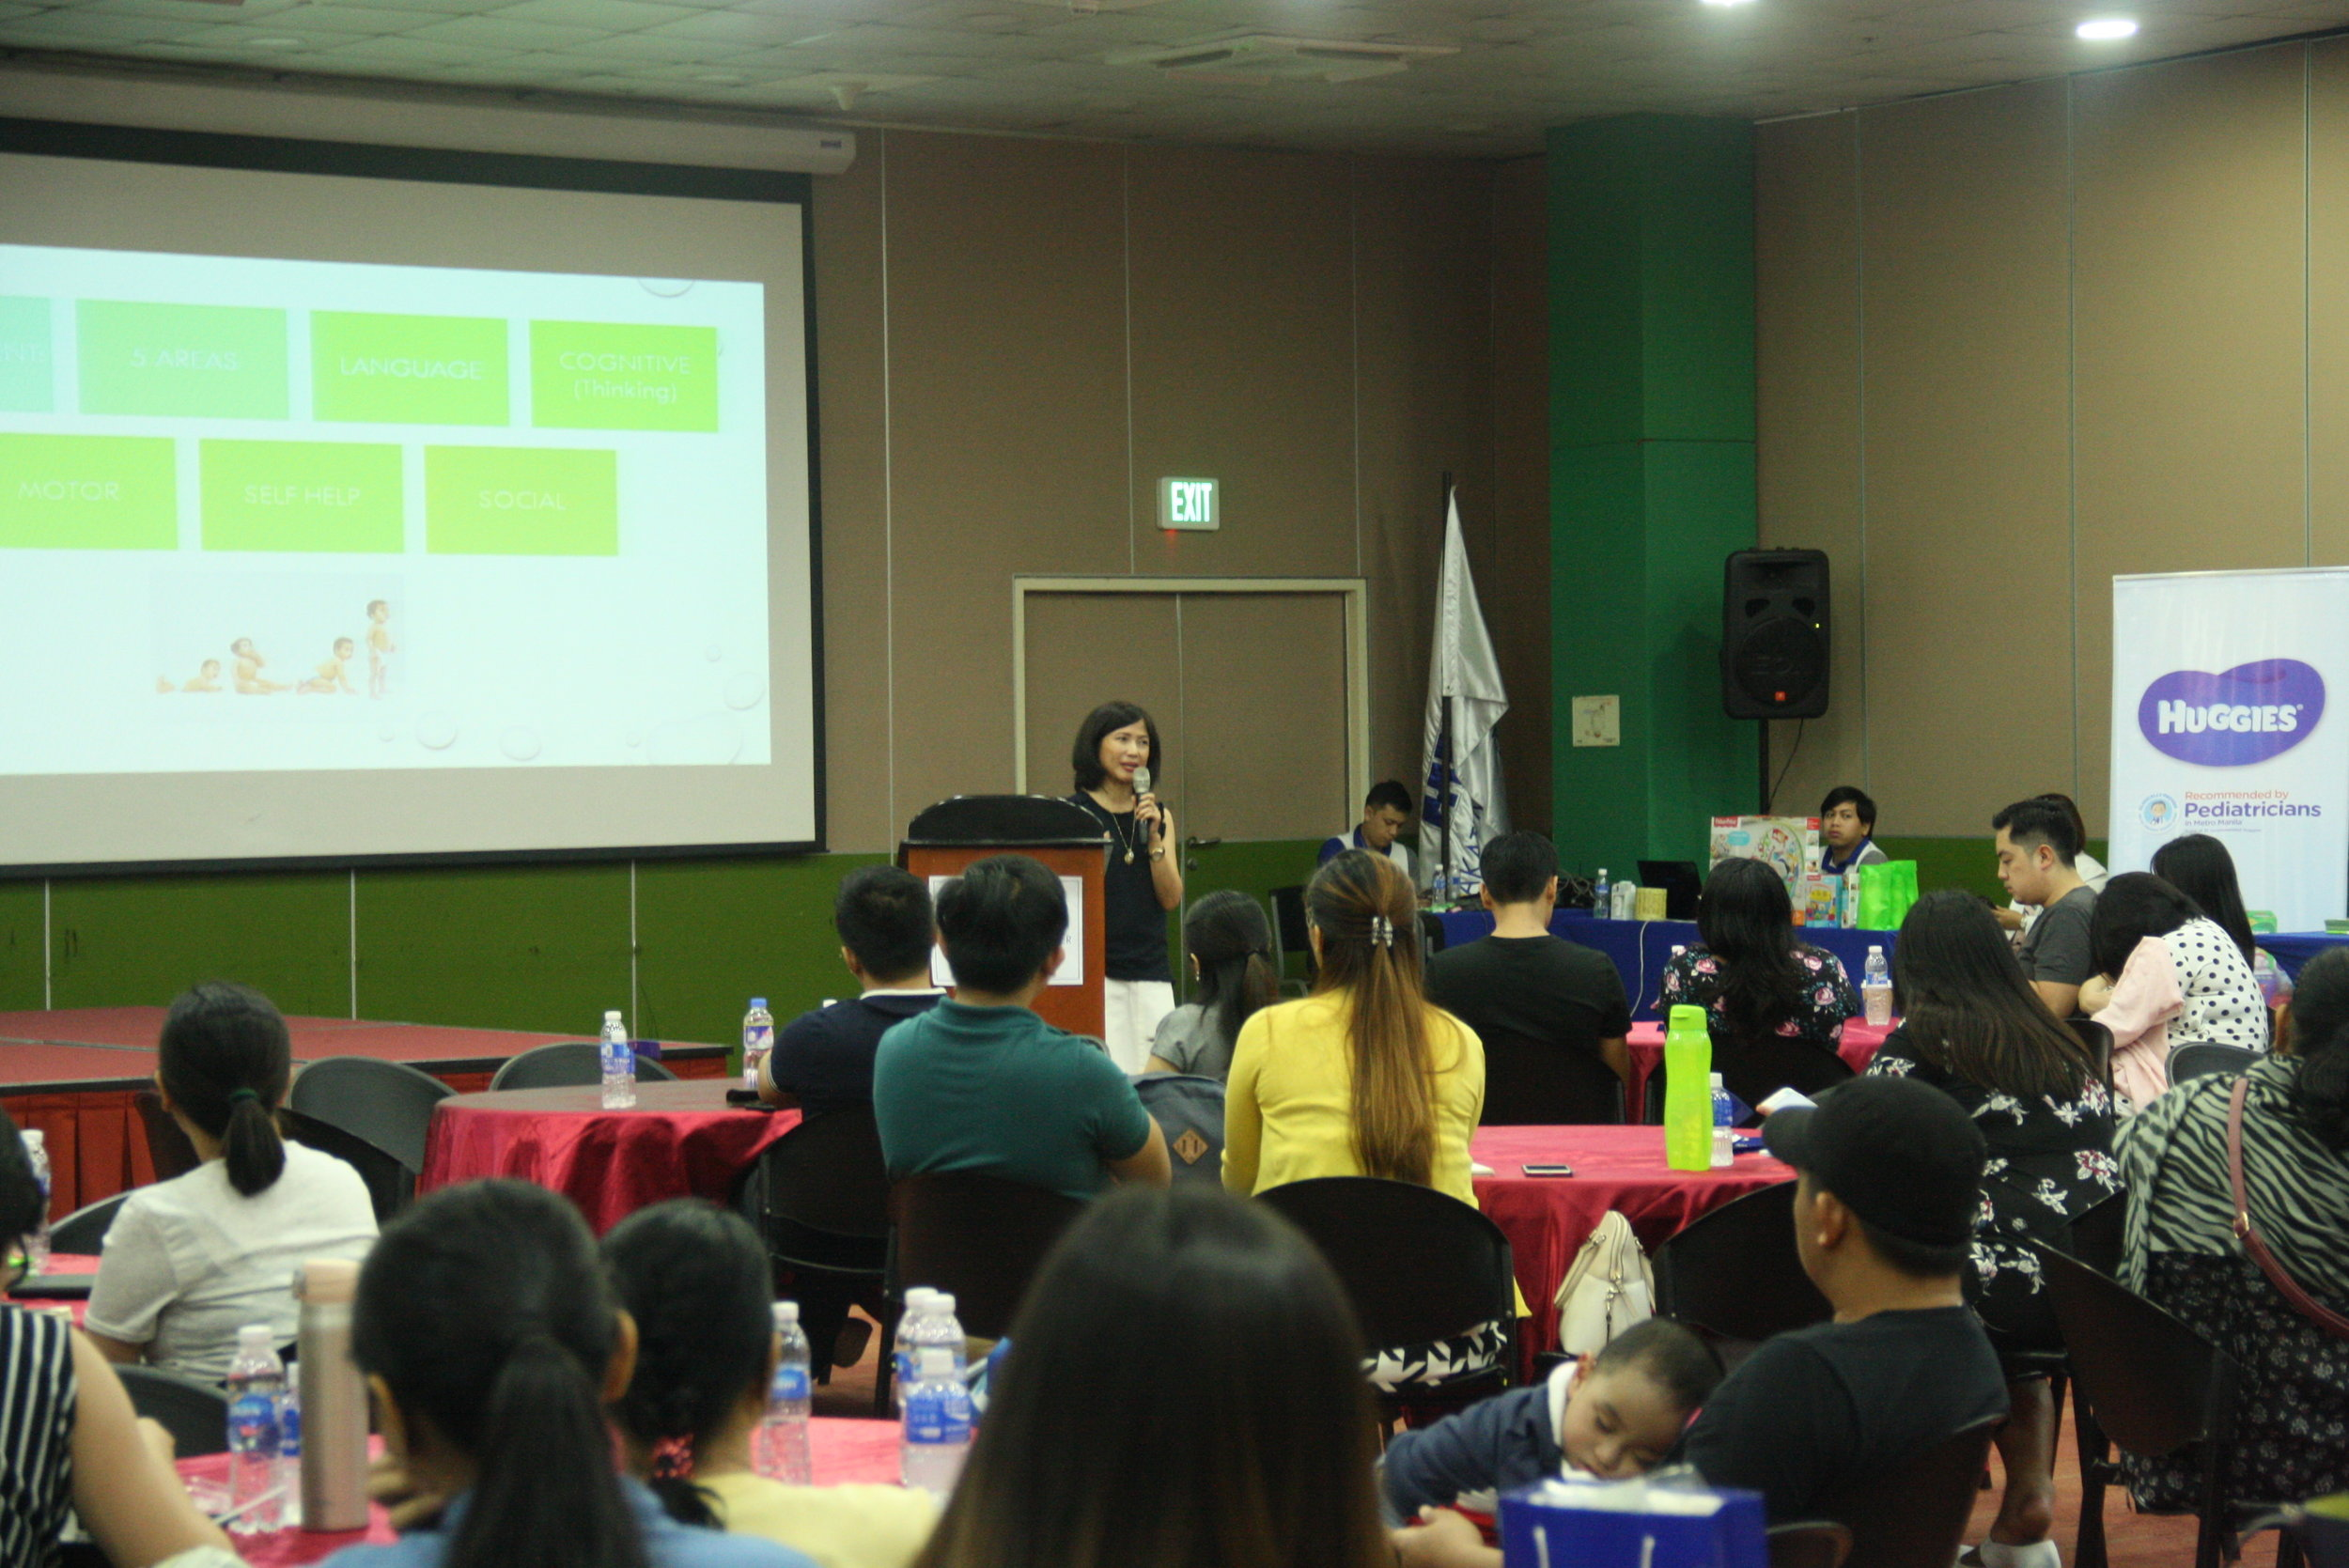 Dr. Maria Michiko Caruncho, MakatiMed's Developmental Pediatrician, educating attendees on the red flags to watch out for in child's development